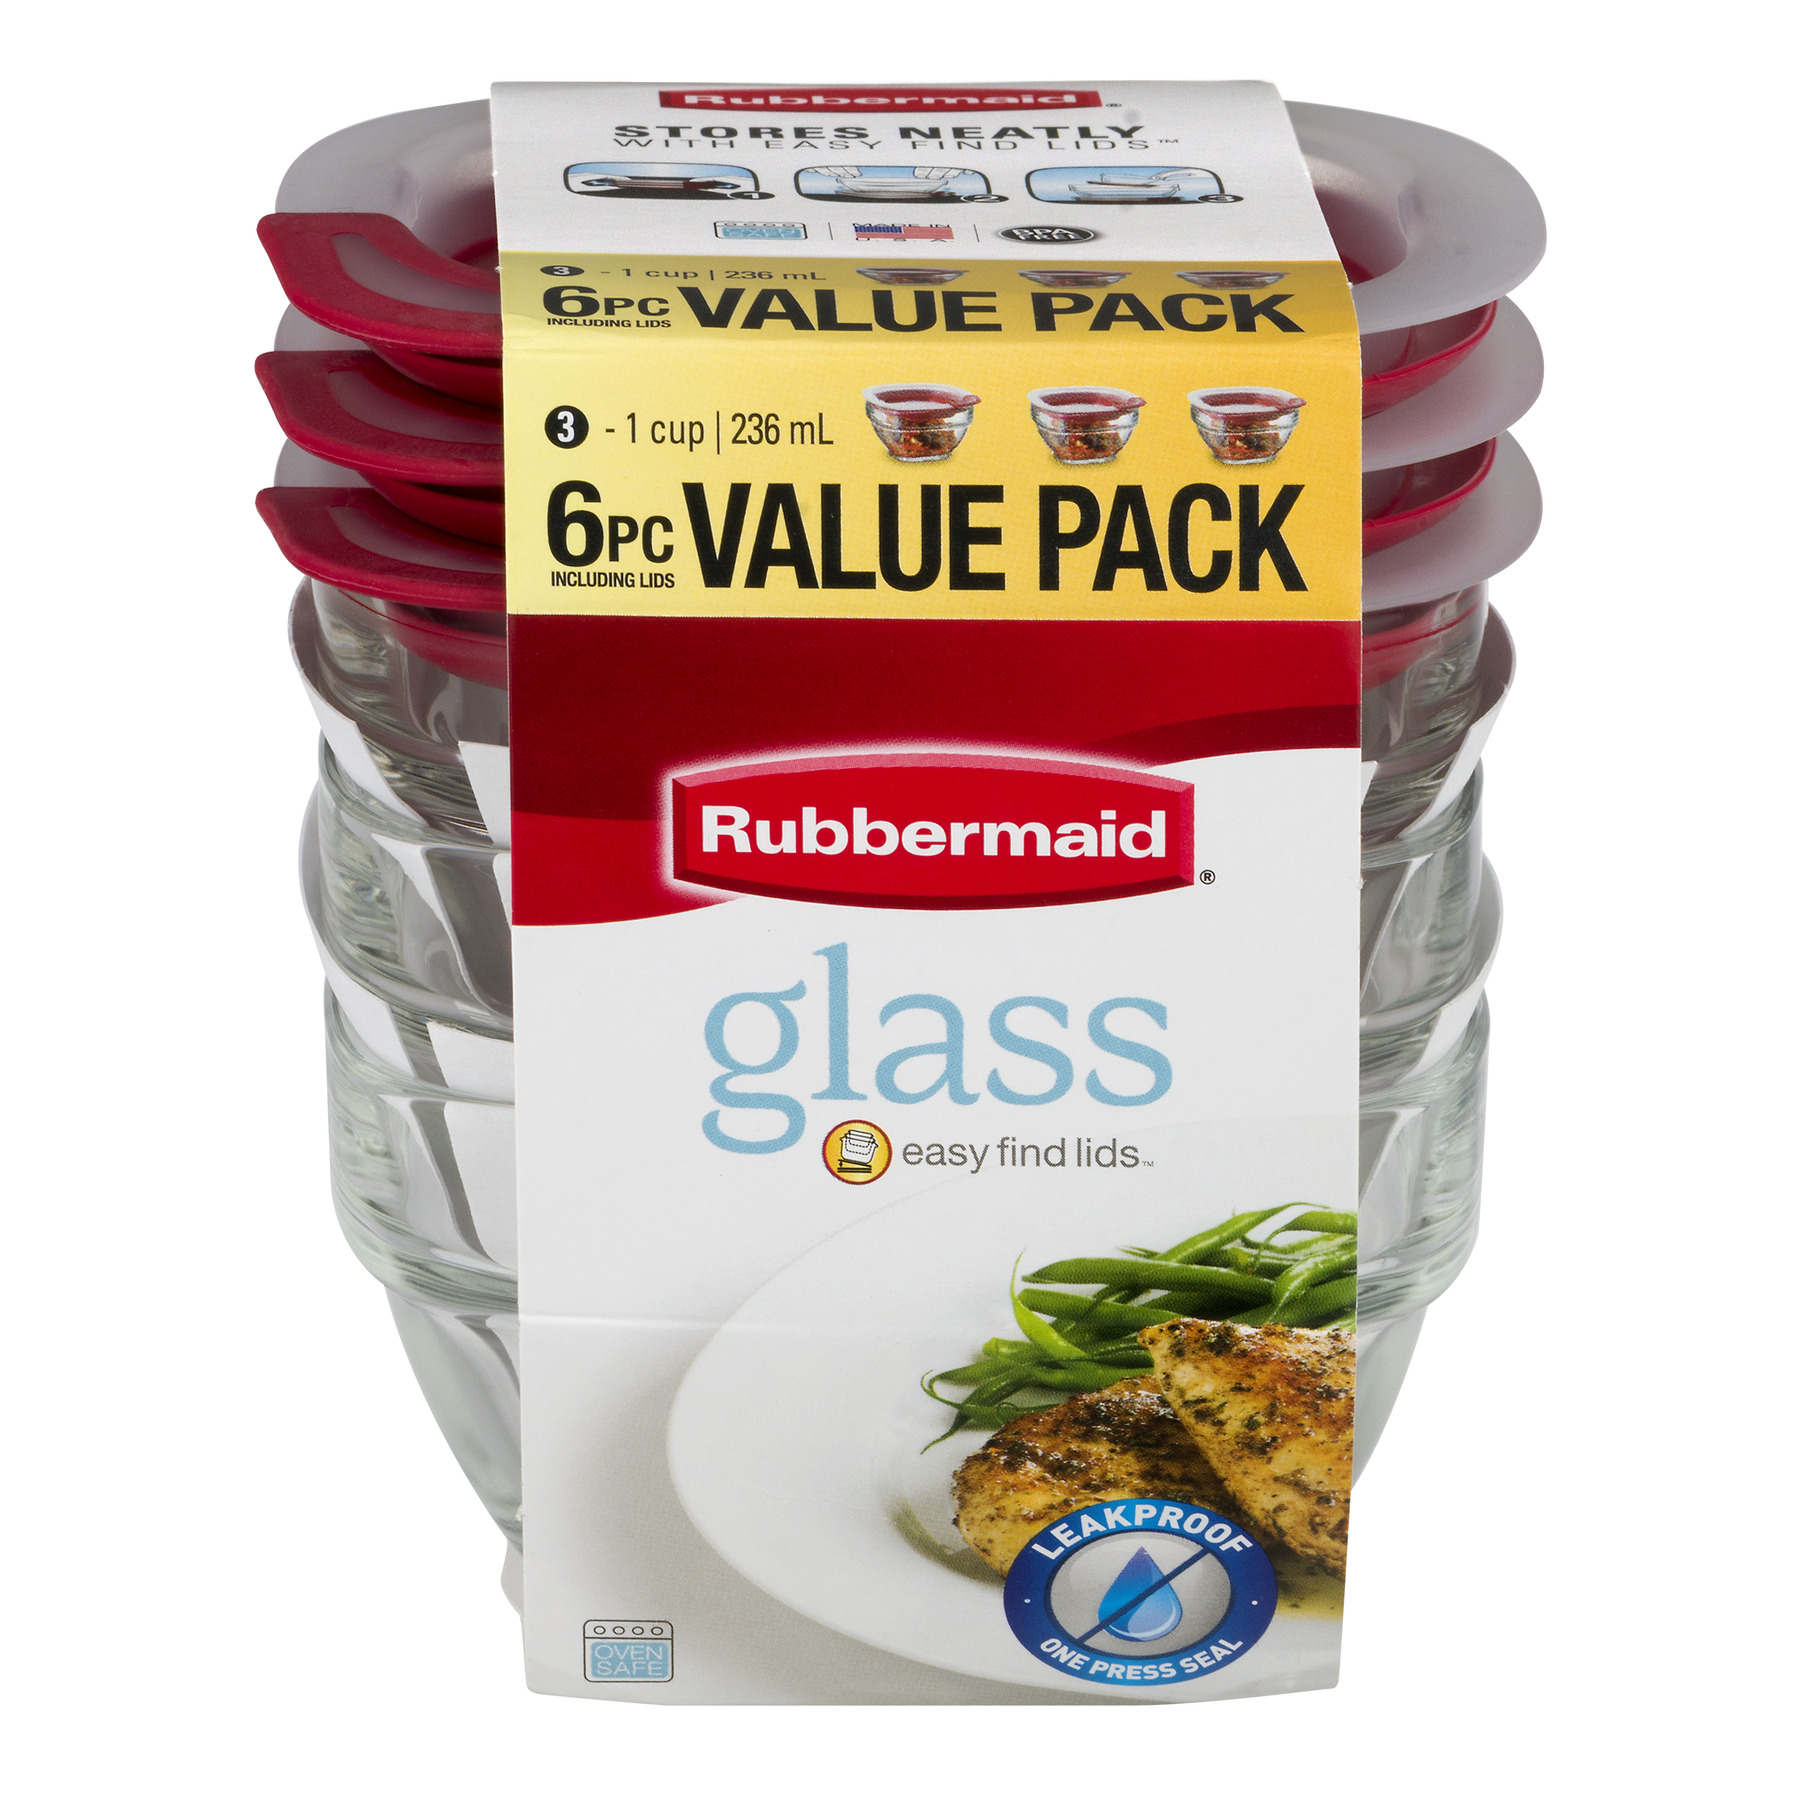 Rubbermaid Glass Containers With Easy Find Lids, 6.0 PIECE(S)